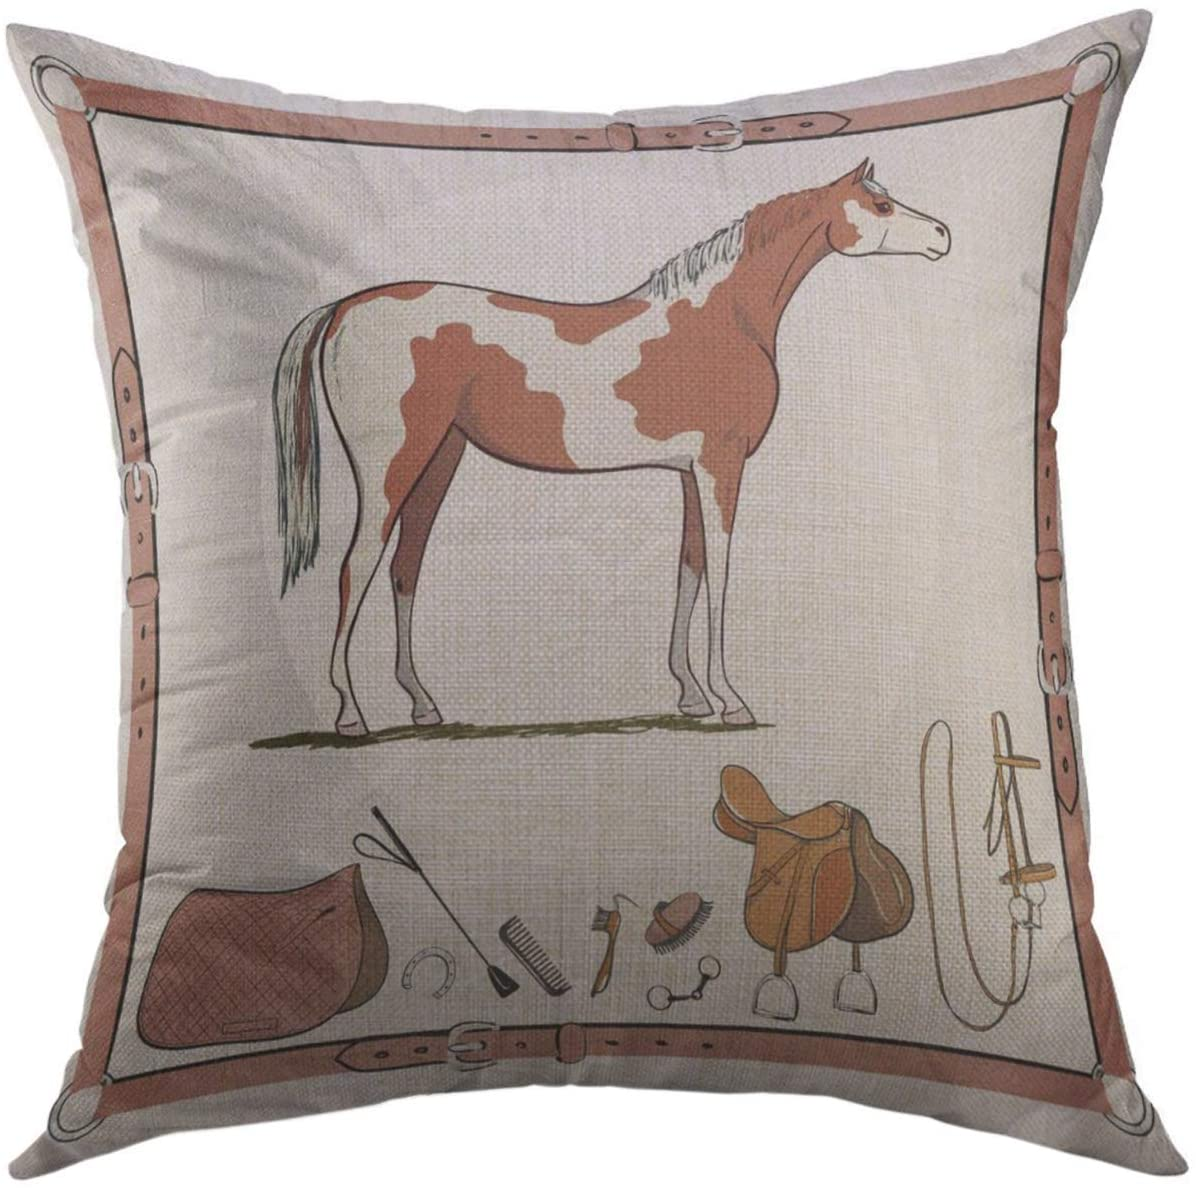 Mugod Decorative Throw Pillow Cover for Couch Sofa,Horse Riding Tack Tools in Leather Belt Bridle Saddle Stirrup Brush Bit Harness Whip Equine Buckle Home Decor Pillow Case 18x18 inch